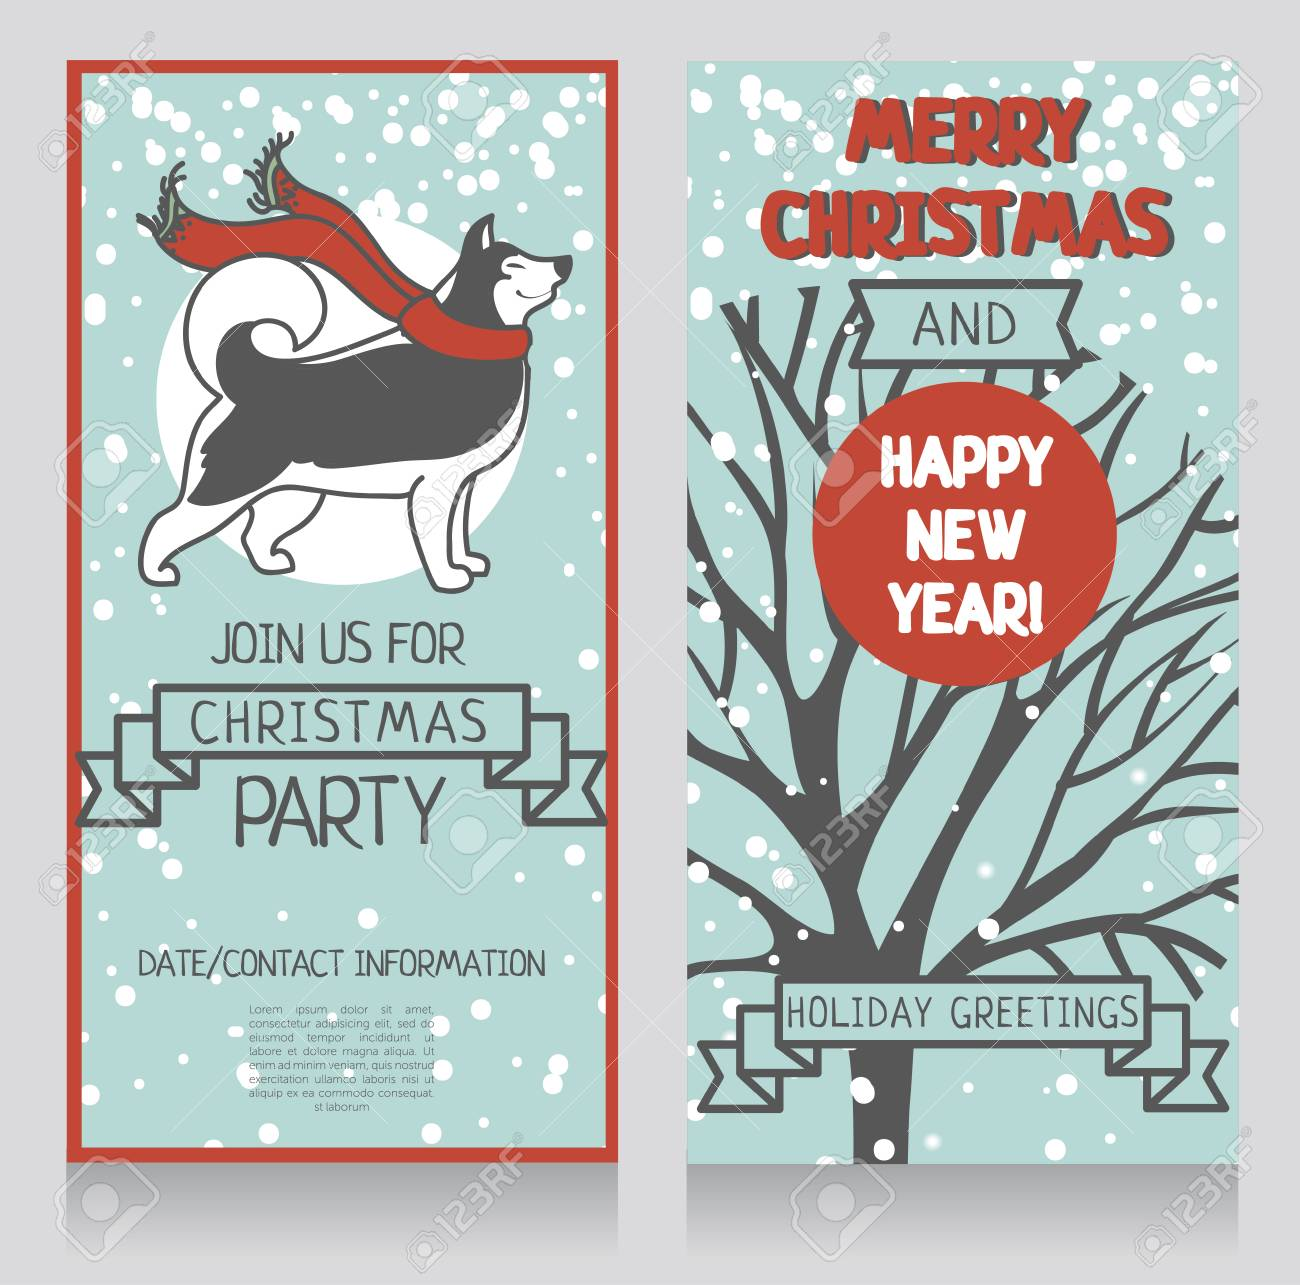 Husky Christmas Cards.Two Greeting Cards For Winter Holidays Party With Cute Smiling